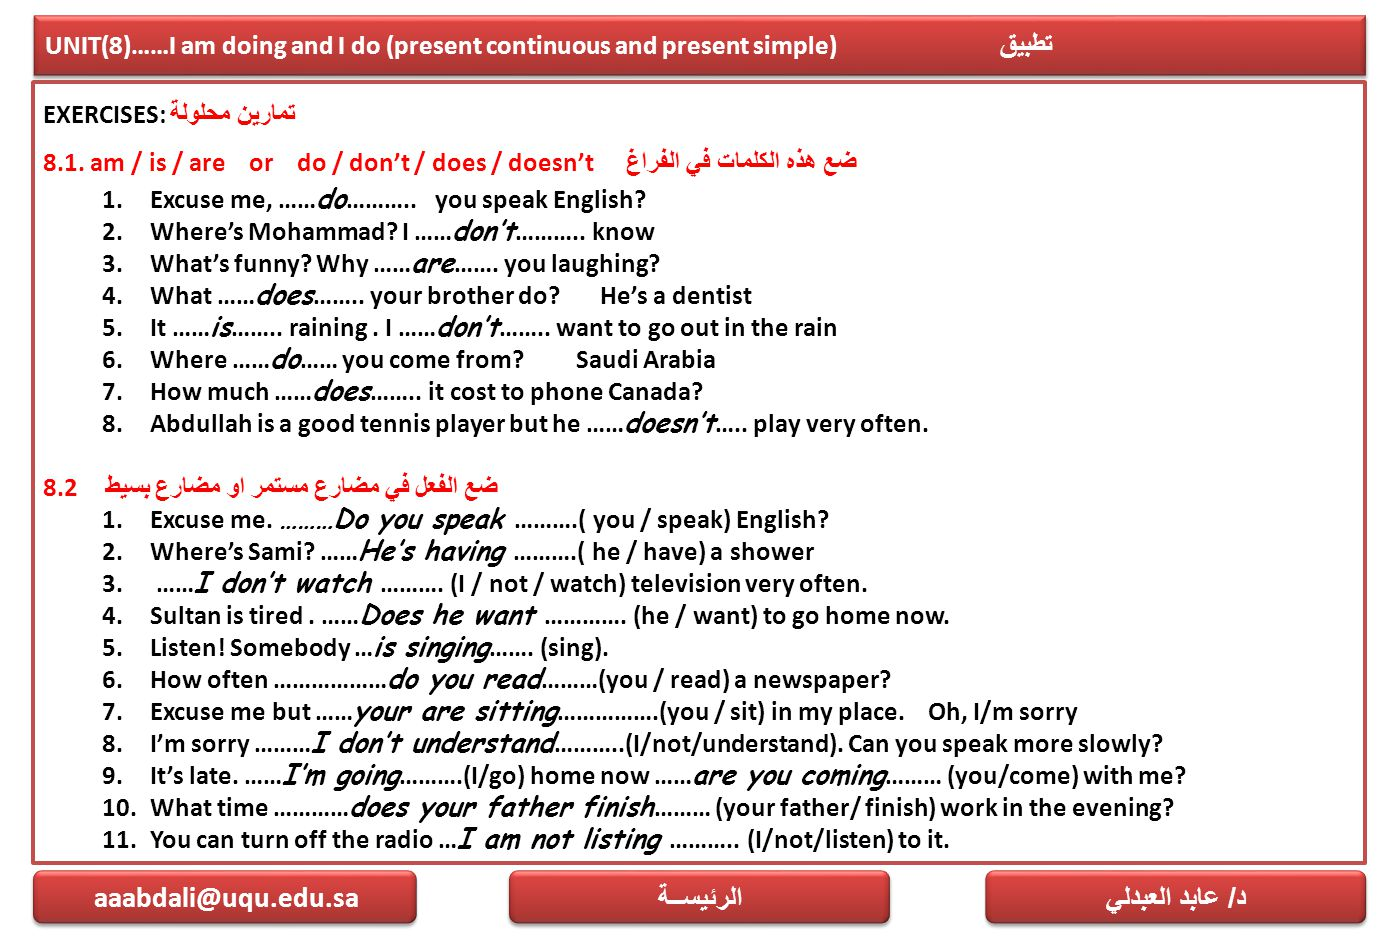 UNIT(8)……I am doing and I do (present continuous and present simple) تطبيق EXERCISES: تمارين محلولة 8.1. am / is / are or do / don't / does / doesn't